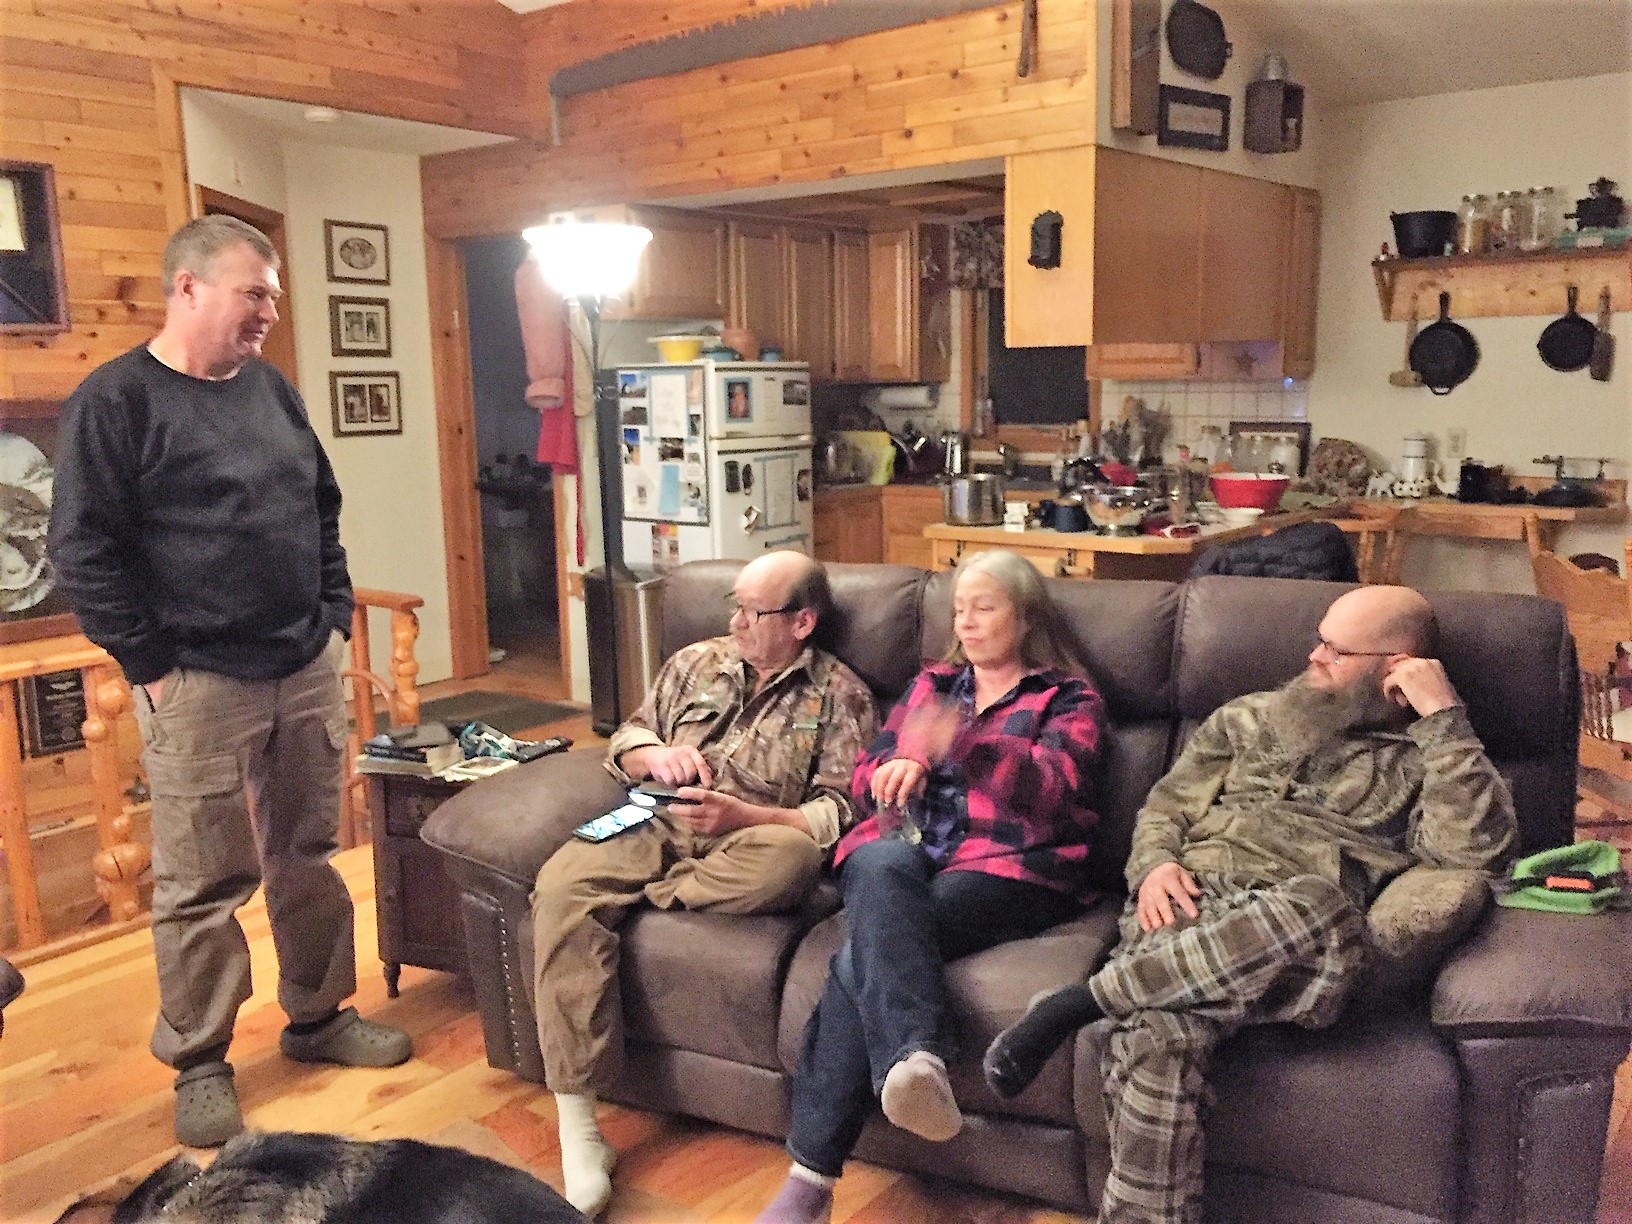 <h6>Christmas with Ray, Riska, and Roger at the Cabin on Cub Lake, December of 2018</h6>